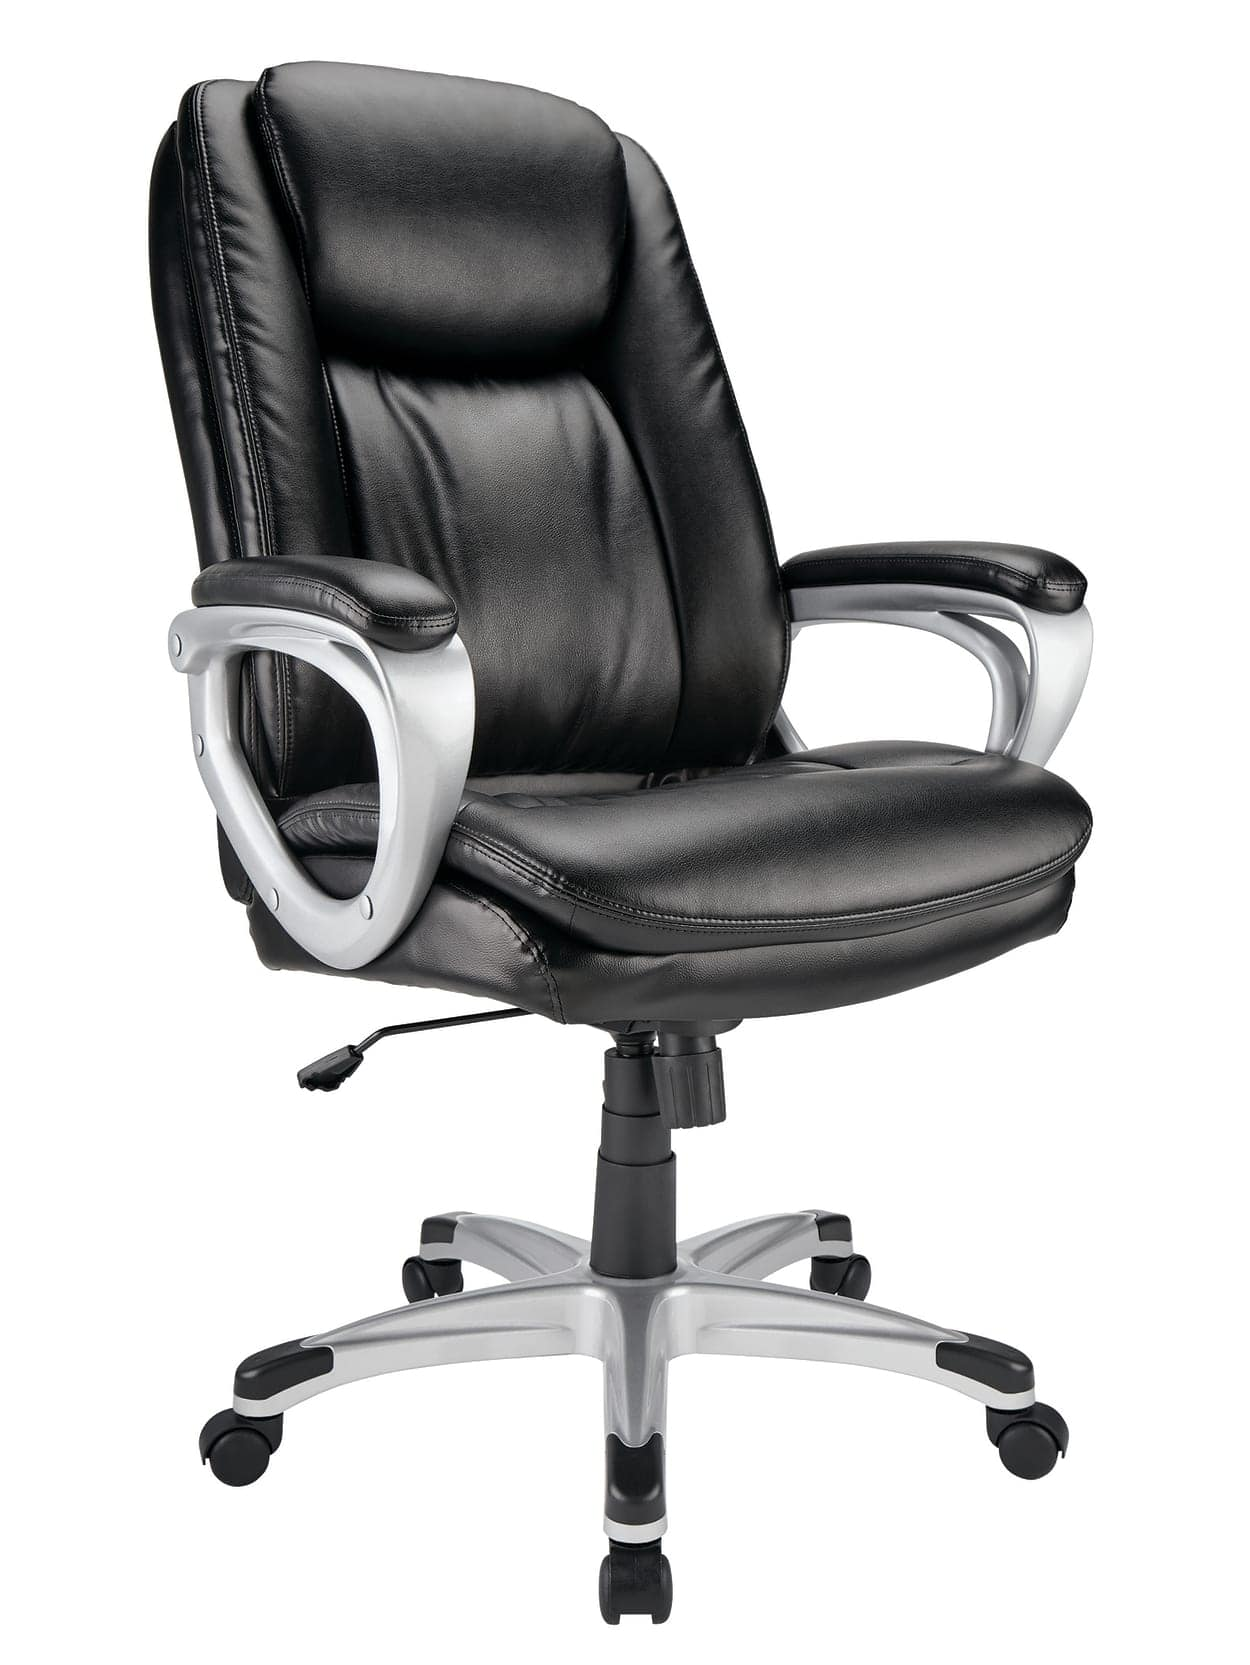 Realspace® Treswell Bonded Leather High-Back Executive Chair, Black/Silver  $119.99 shipped OFFICE DEPOT (+ 5% back using Discover on Paypal)